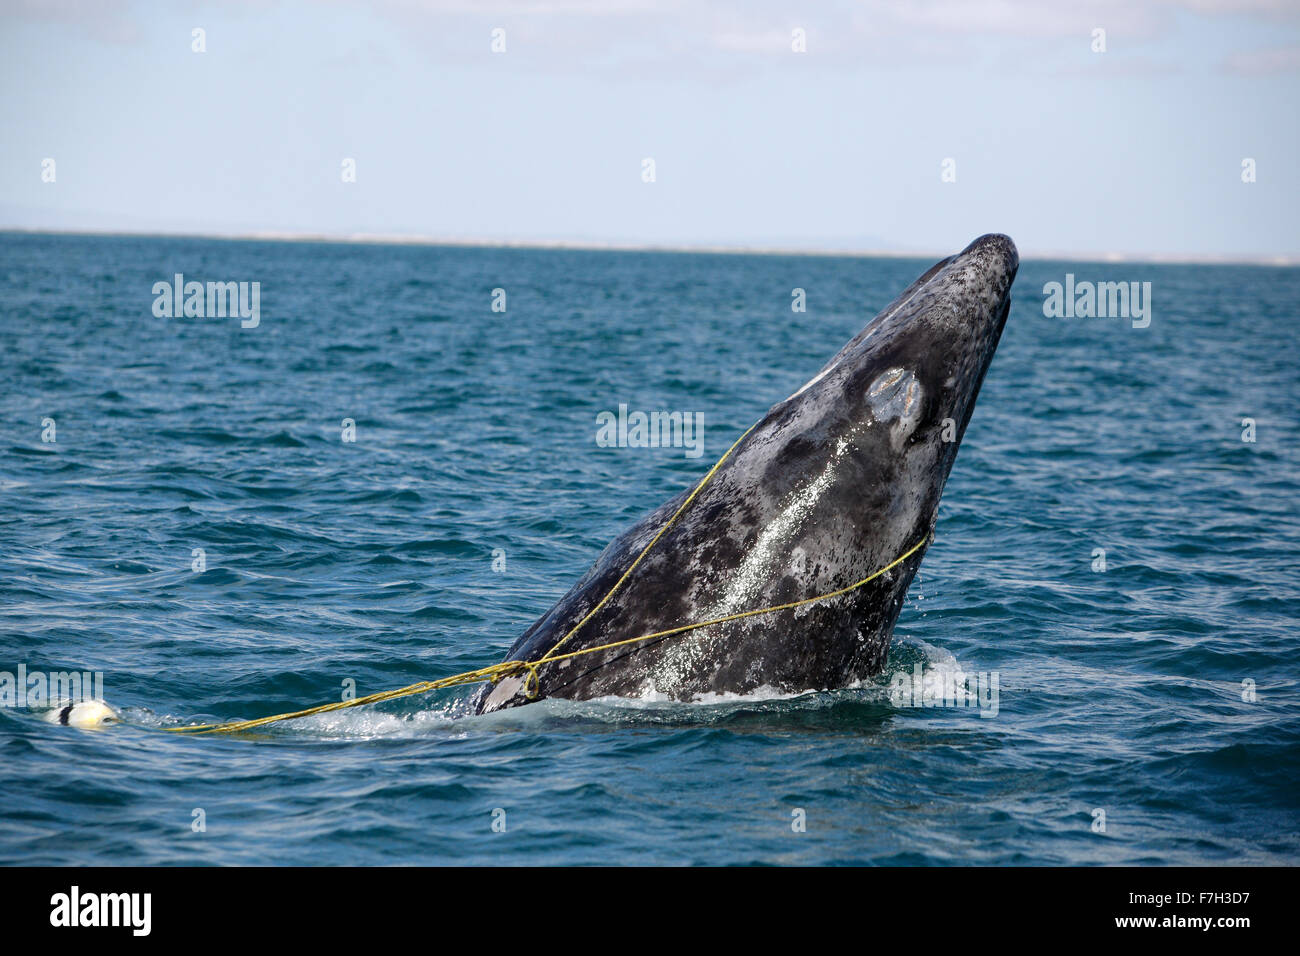 pr5305-D. Gray Whale (Eschrichtius robustus) breaching, juvenile entangled in a lobster trap line. The rope is caught - Stock Image